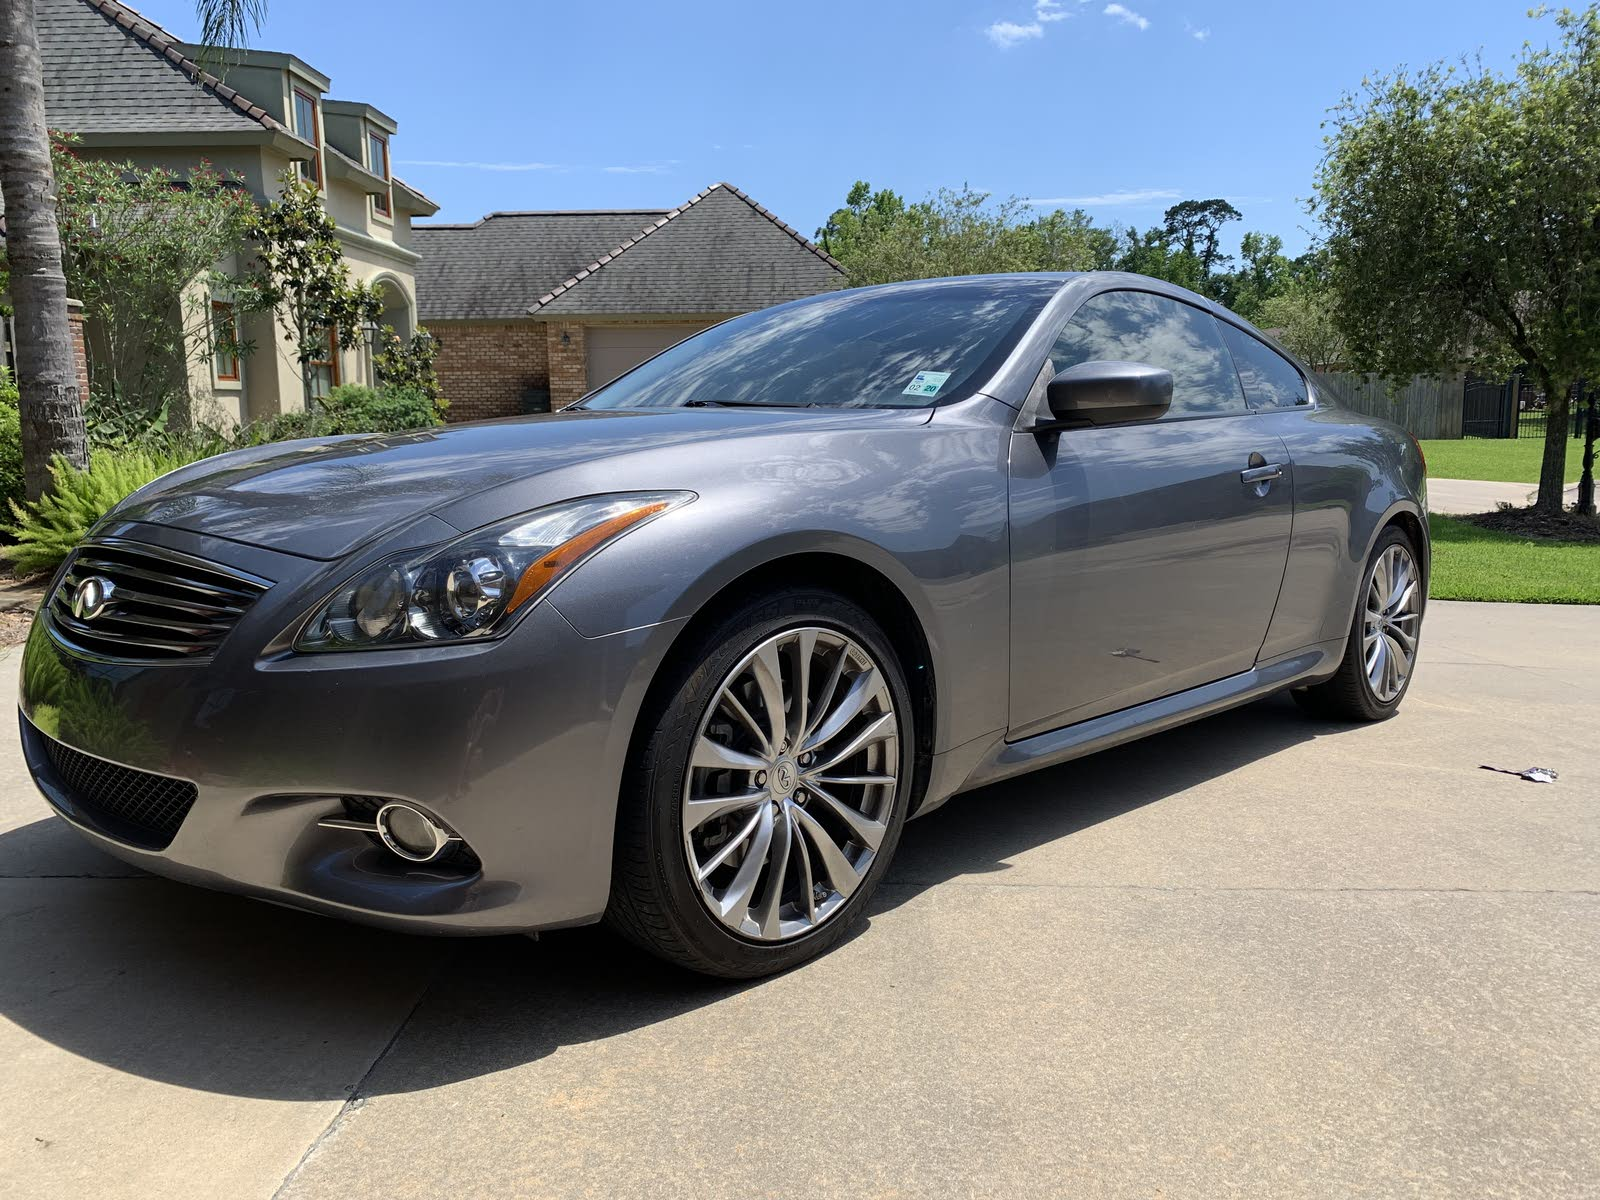 2012 Infiniti G37 Test Drive Review Cargurus